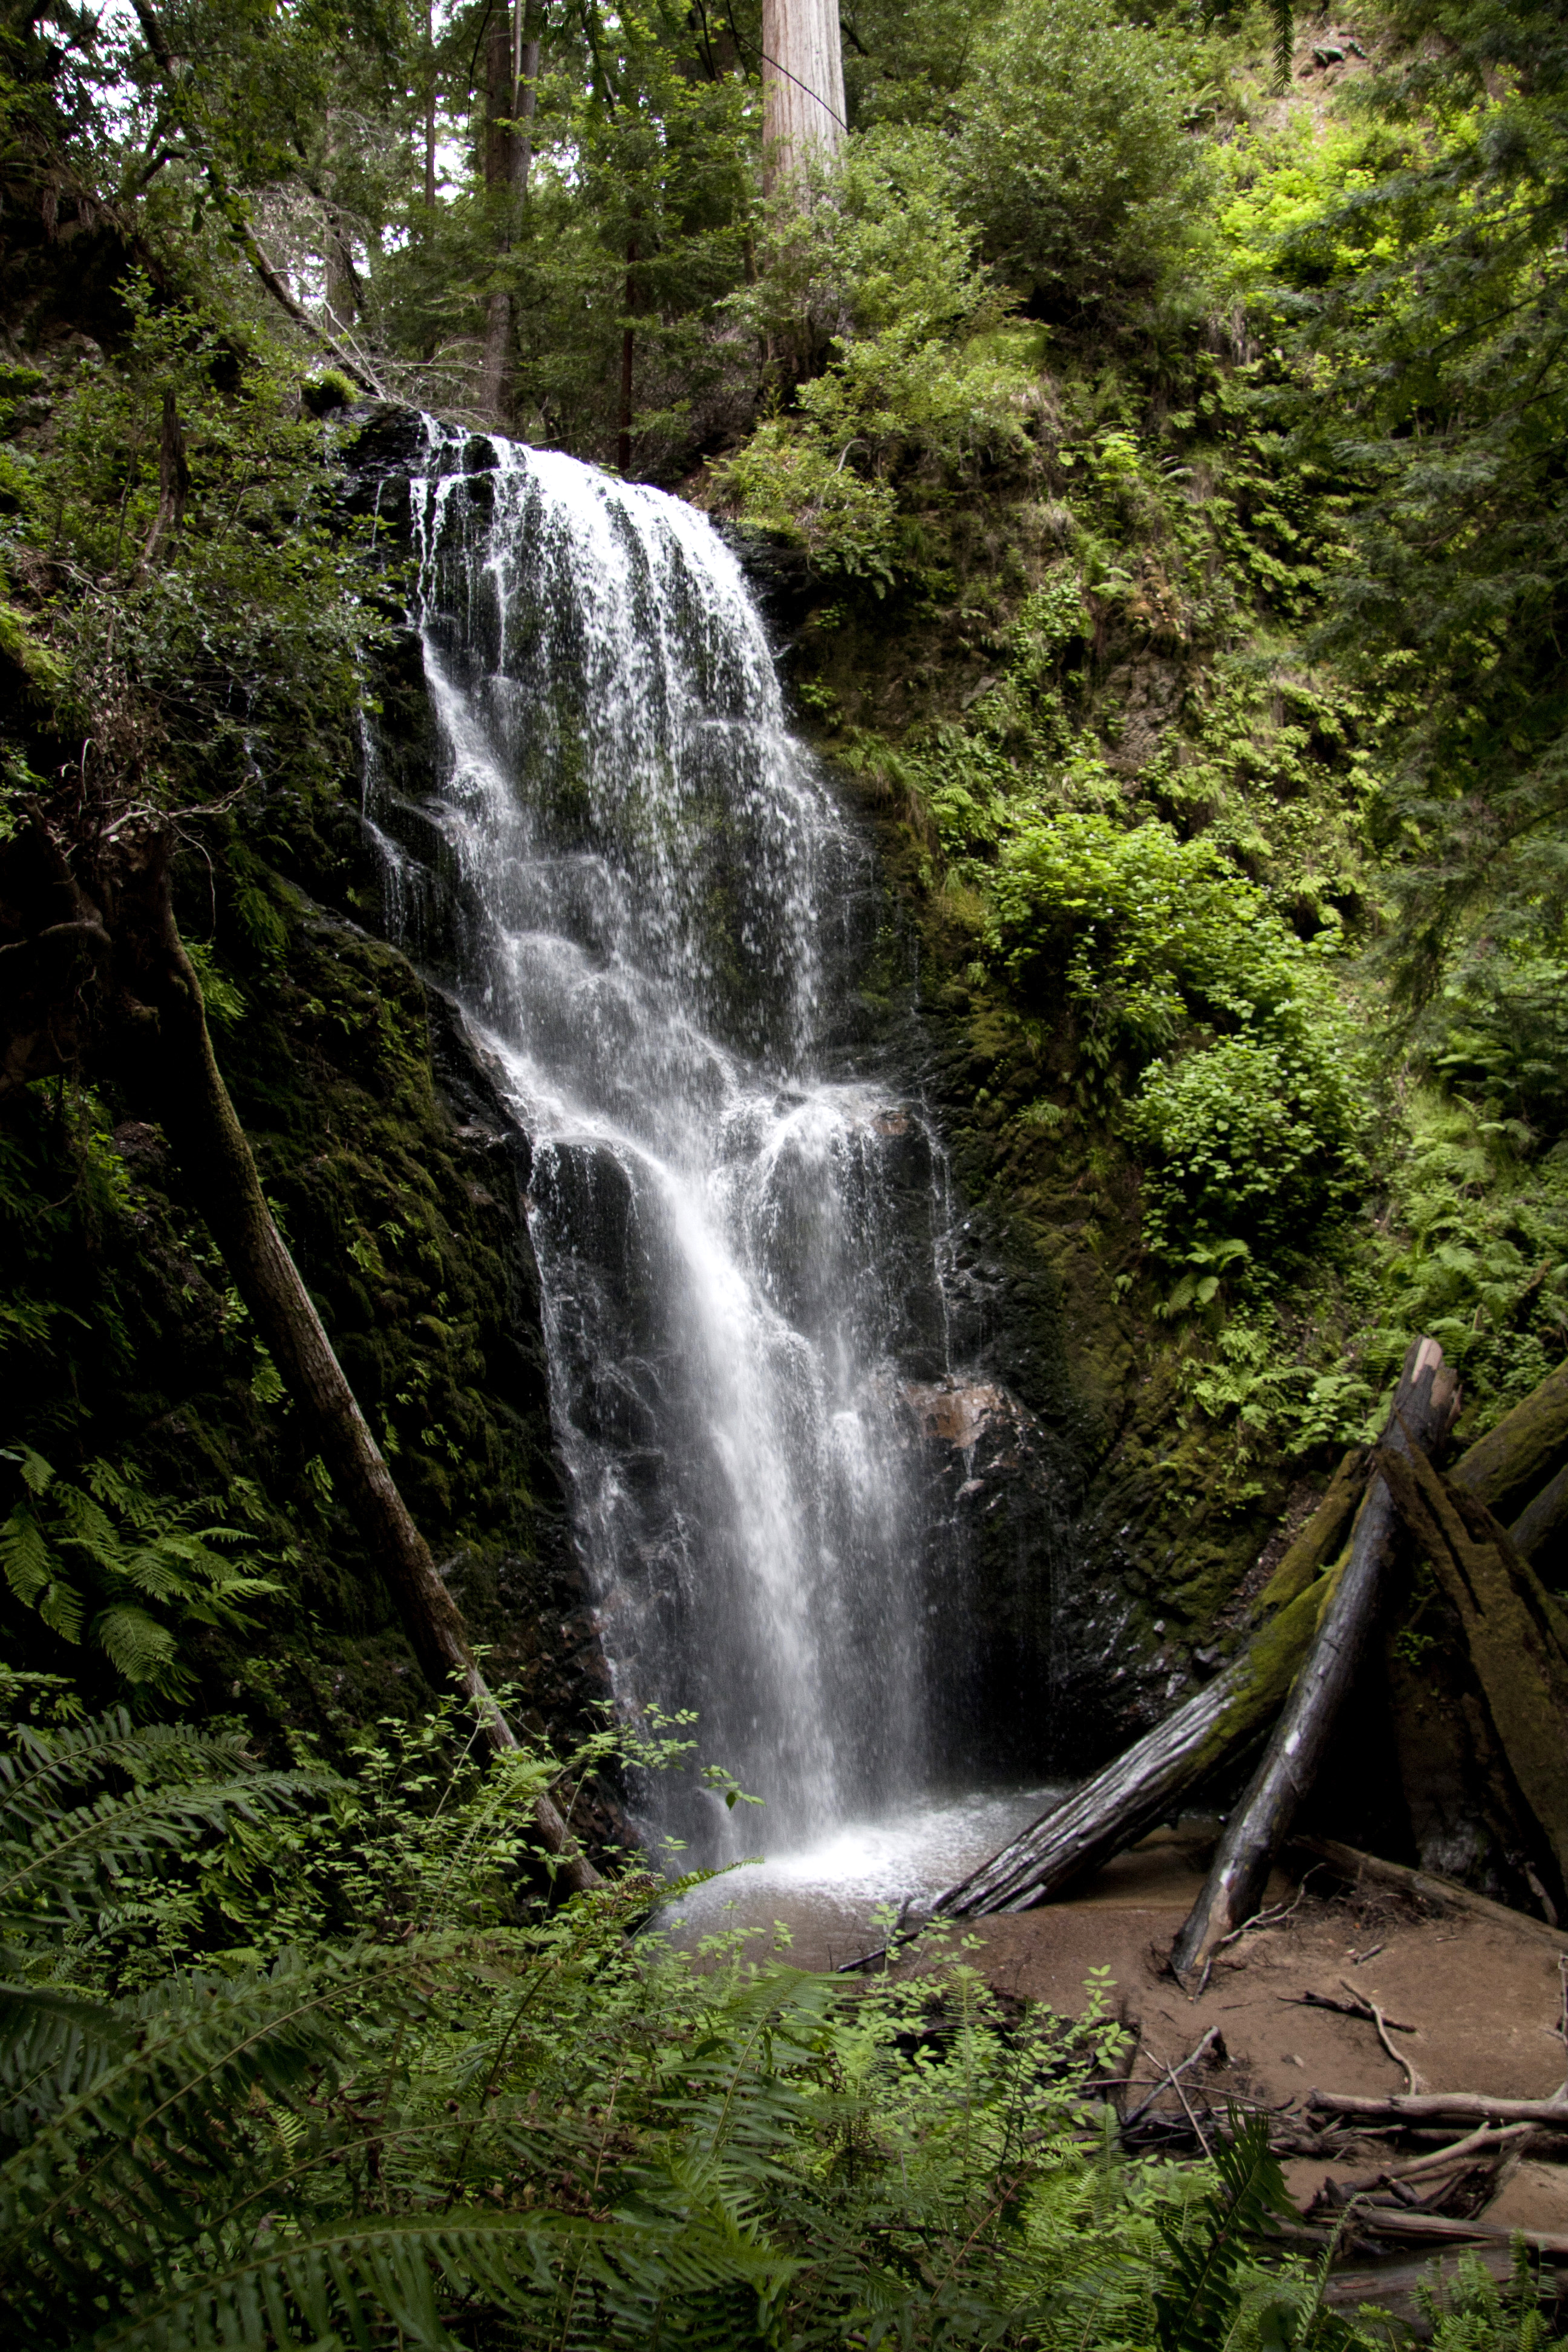 Waterfall image